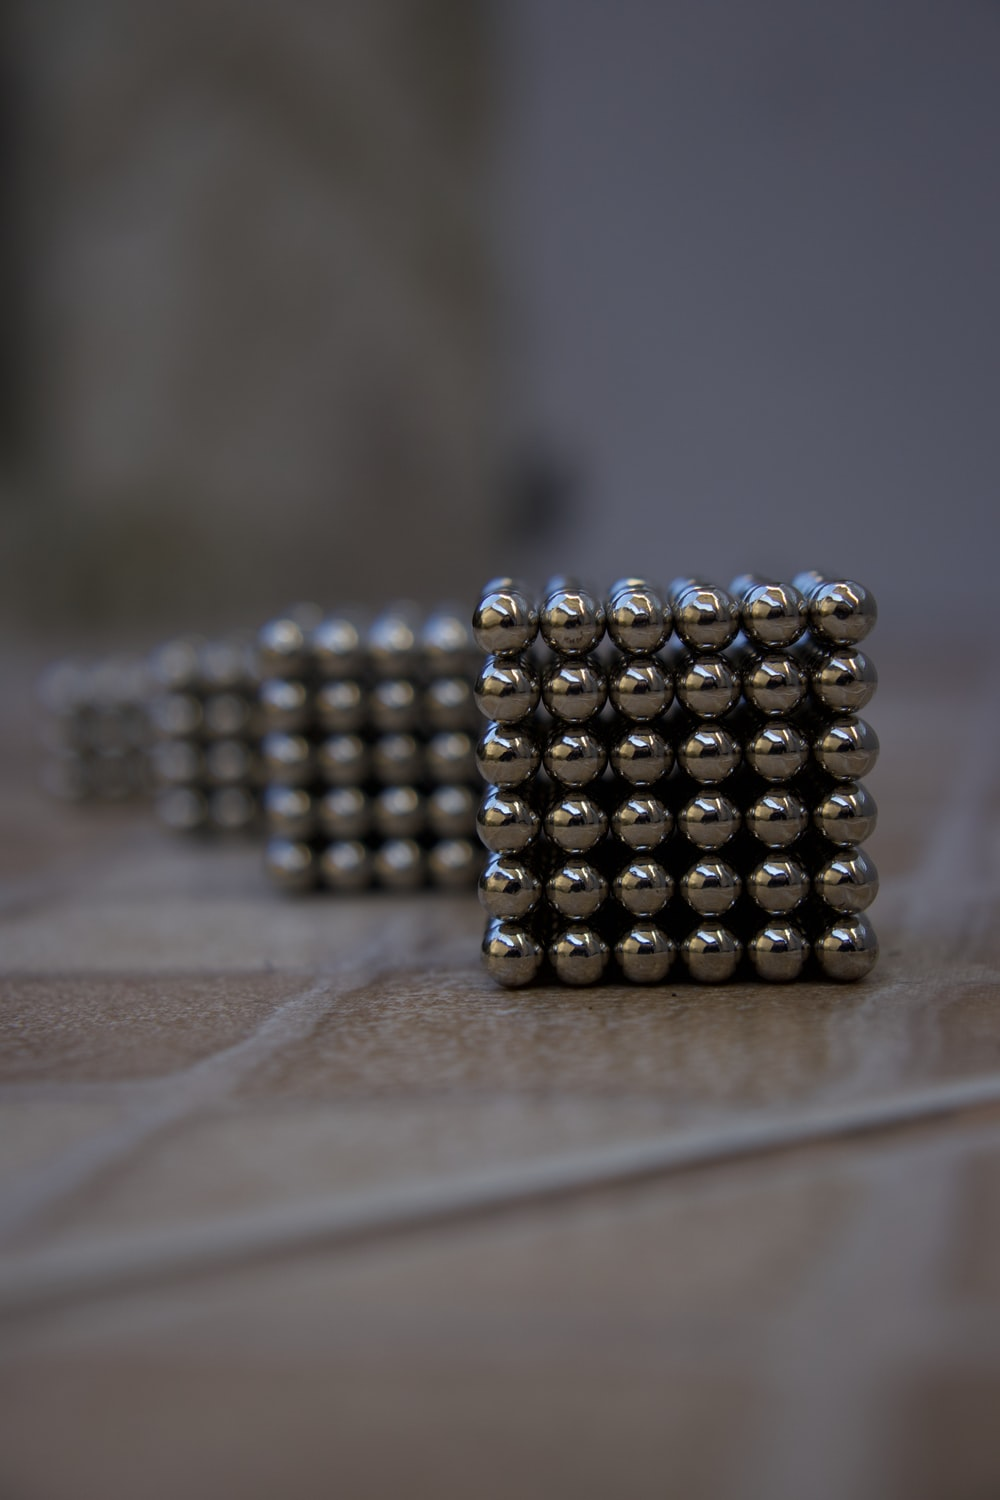 silver beads on brown wooden table